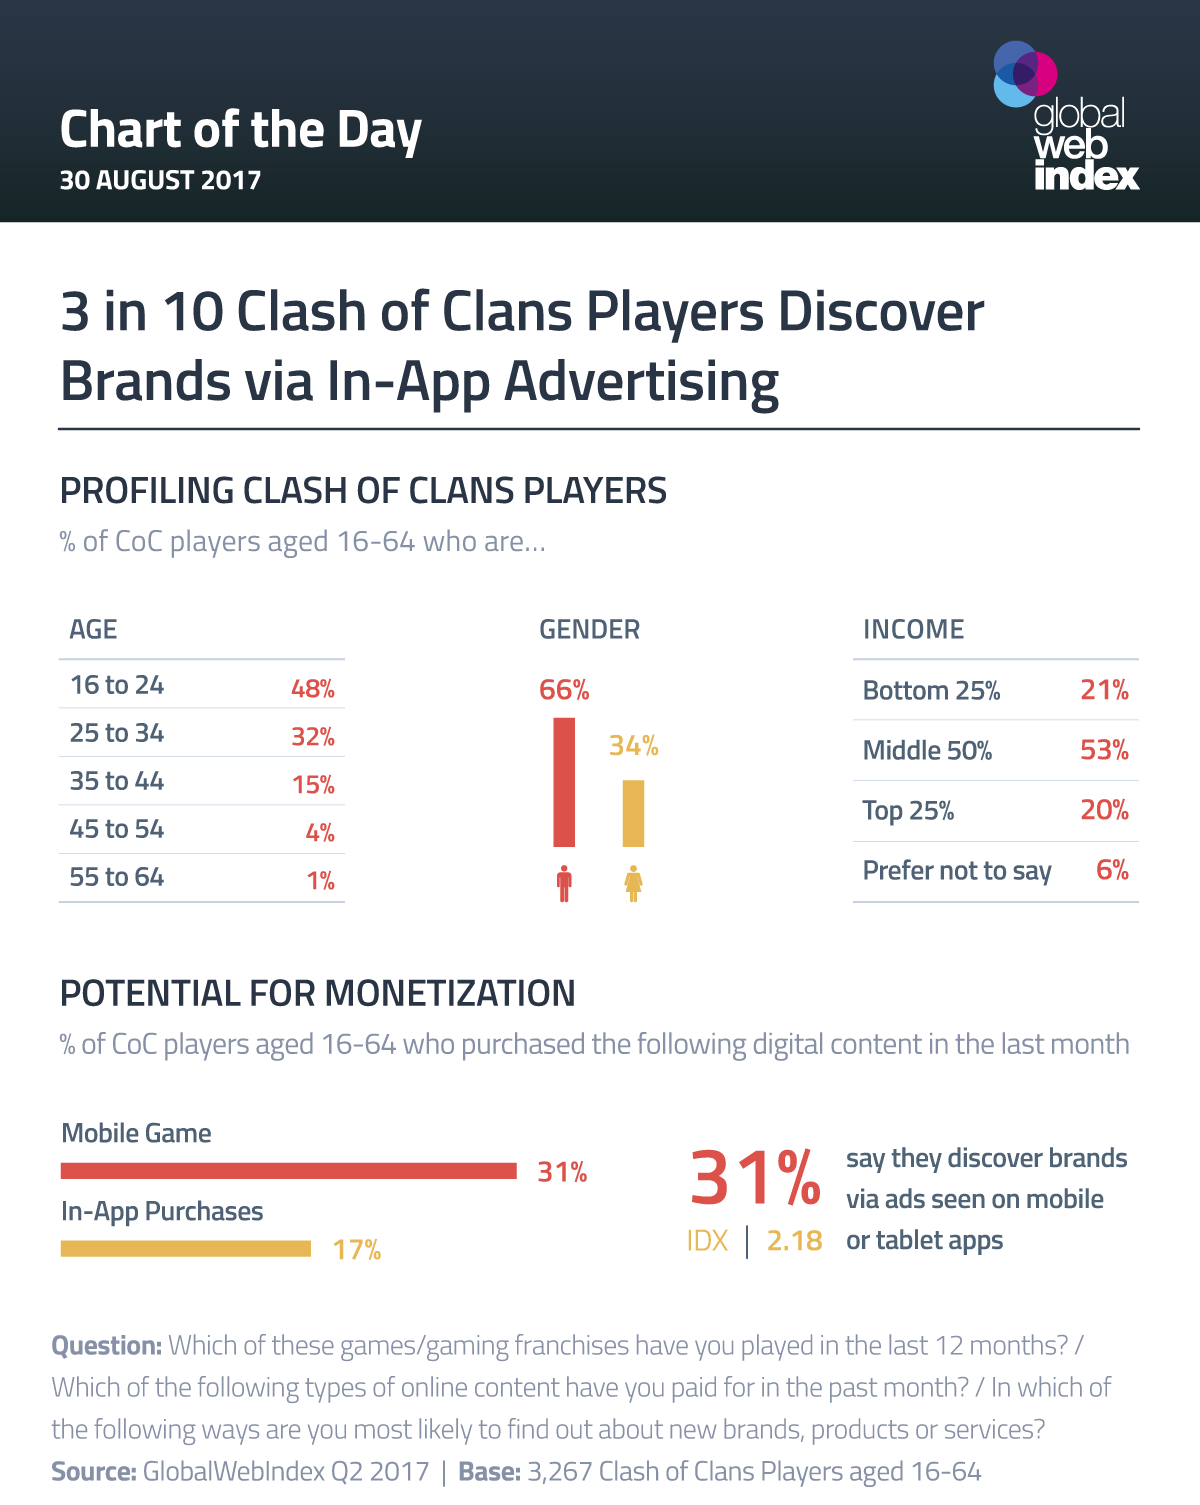 3 in 10 Clash of Clans Players Discover Brands via In-App Advertising